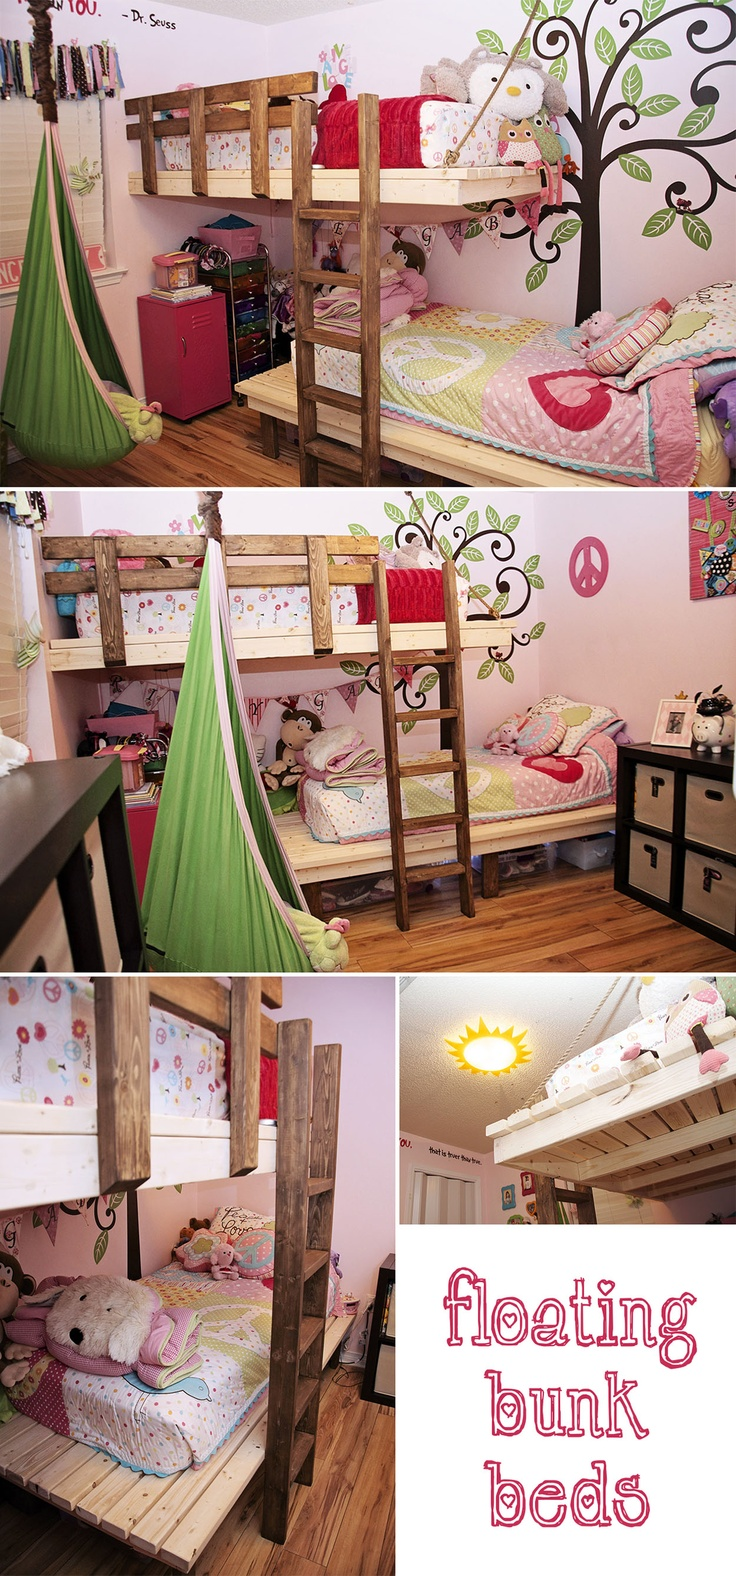 Floating Bunk Beds, and still room for storage